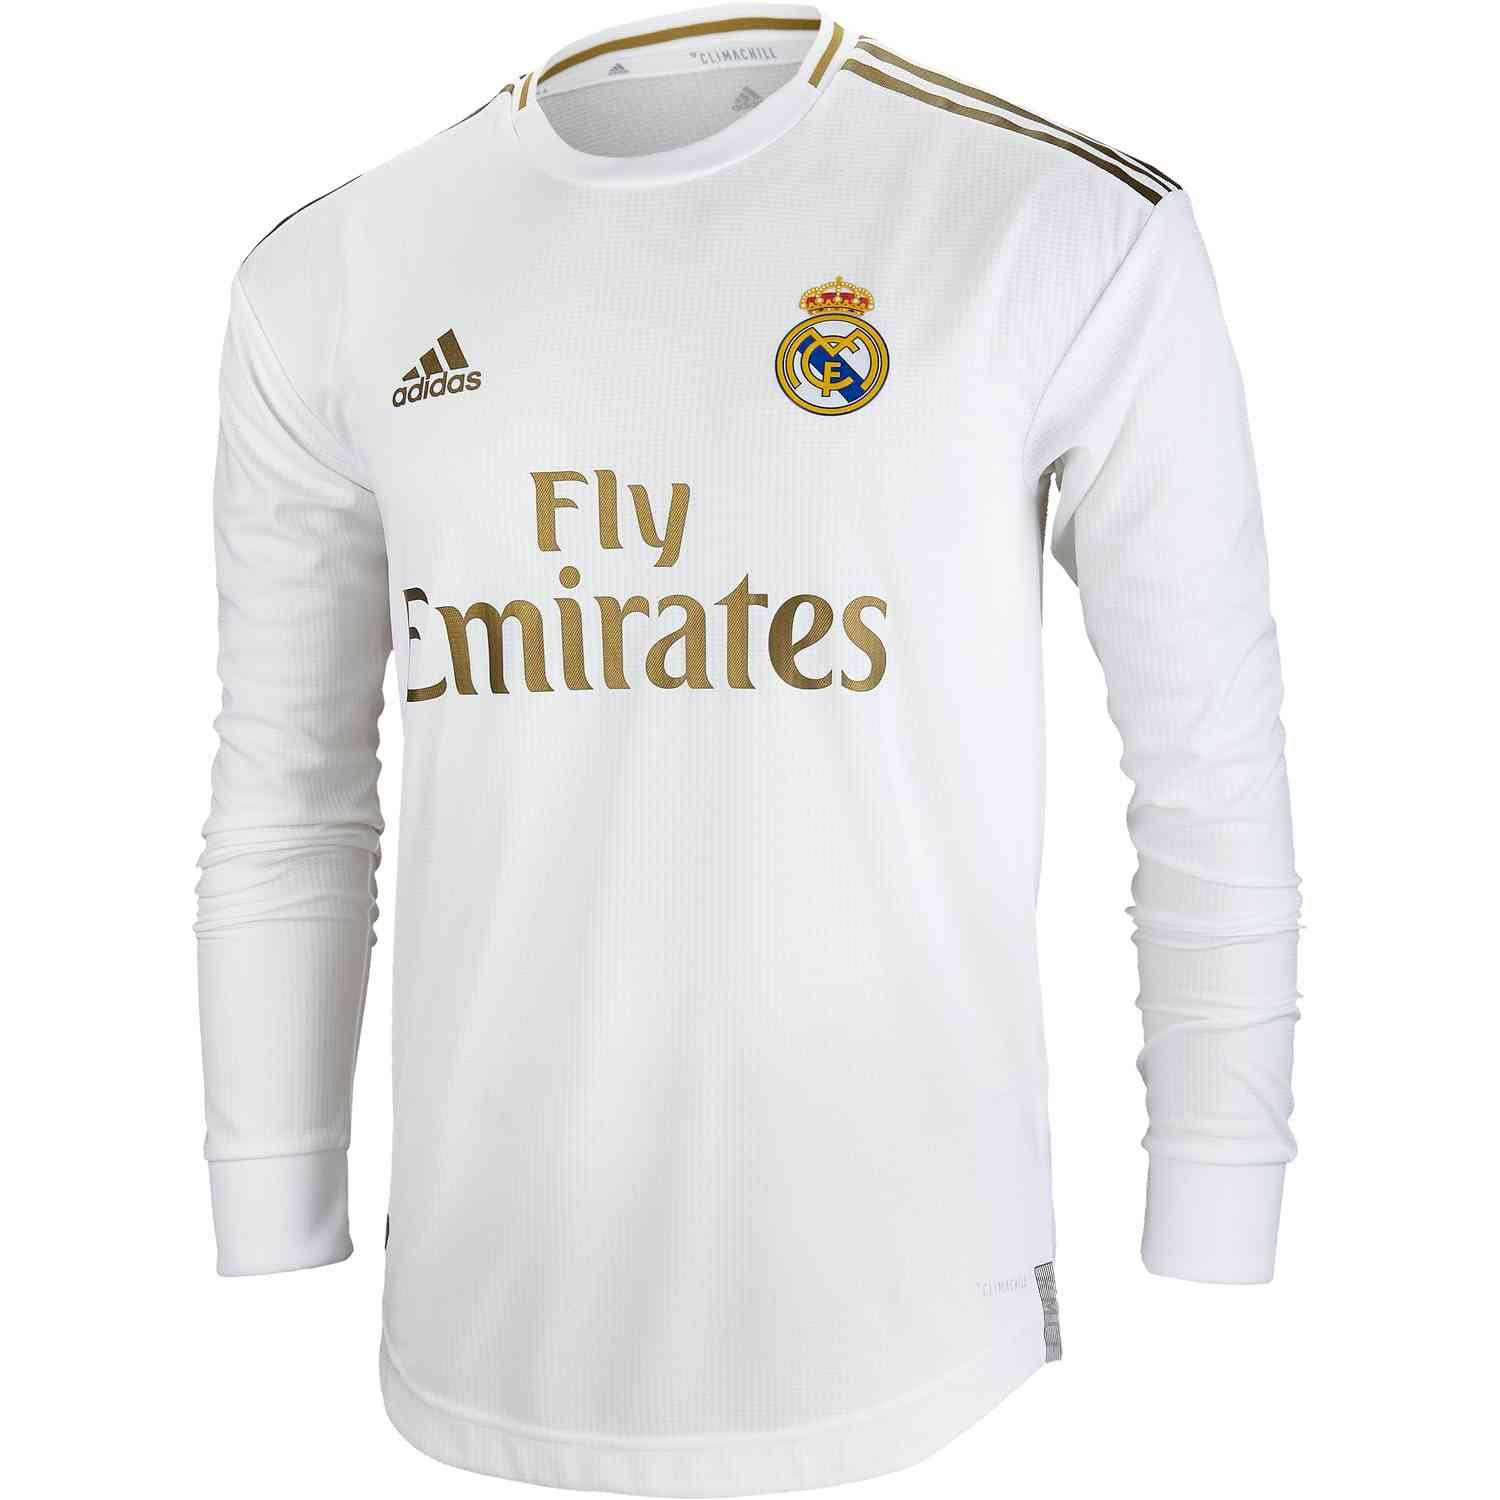 purchase cheap d31f1 b2199 2019/20 adidas Real Madrid Home L/S Authentic Jersey